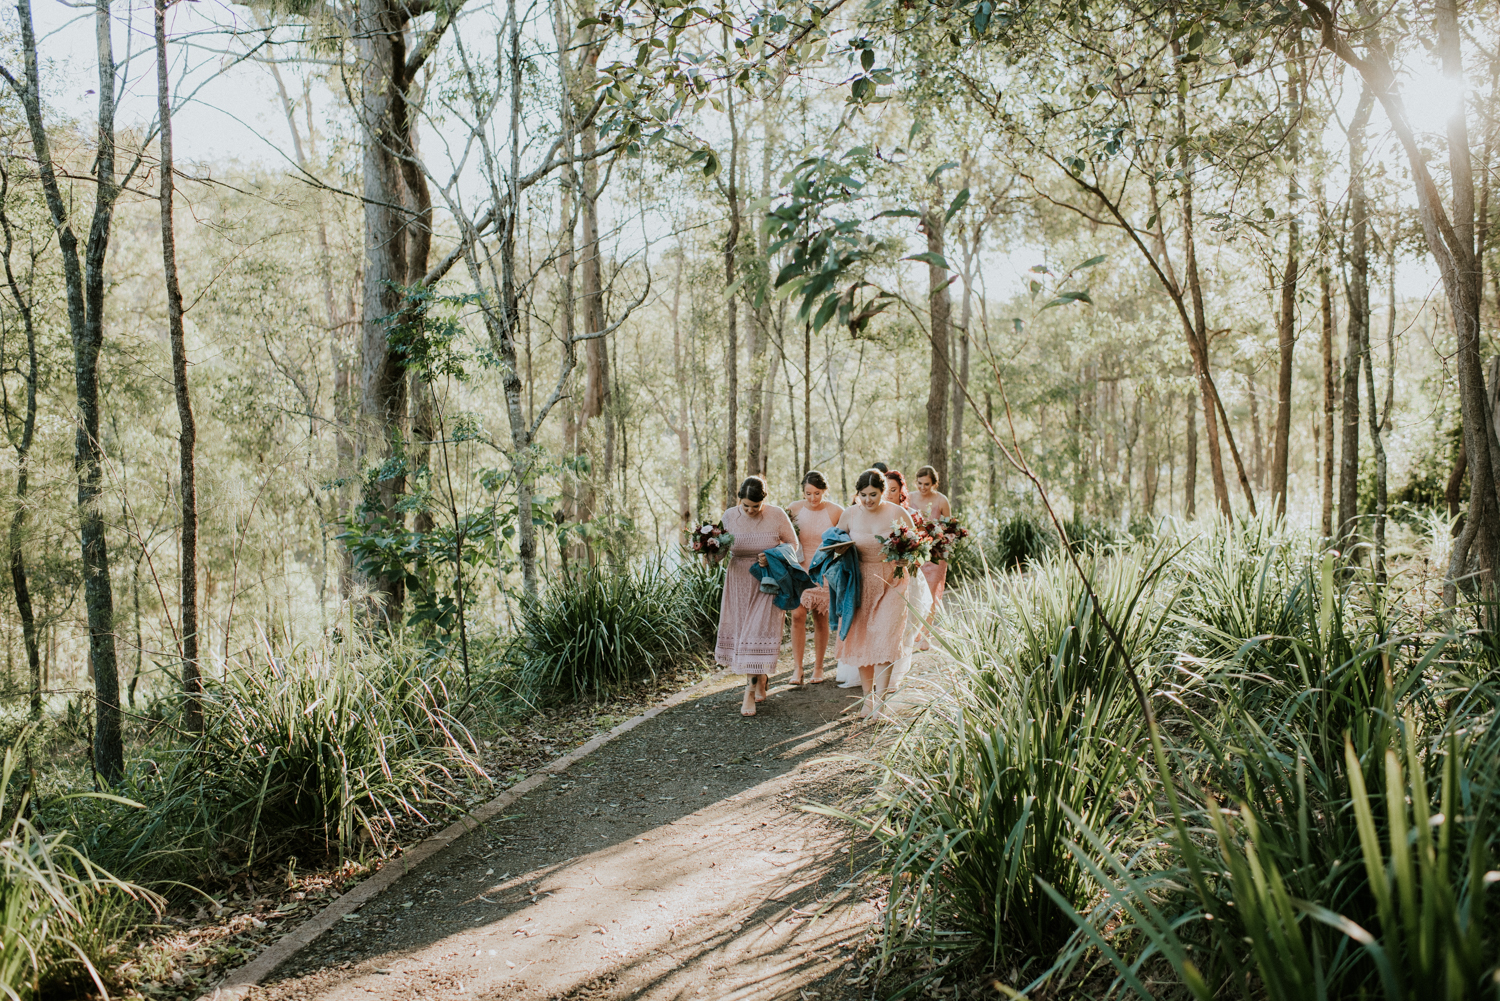 Brisbane Wedding Photographer | Walkabout Creek Photography-66.jpg